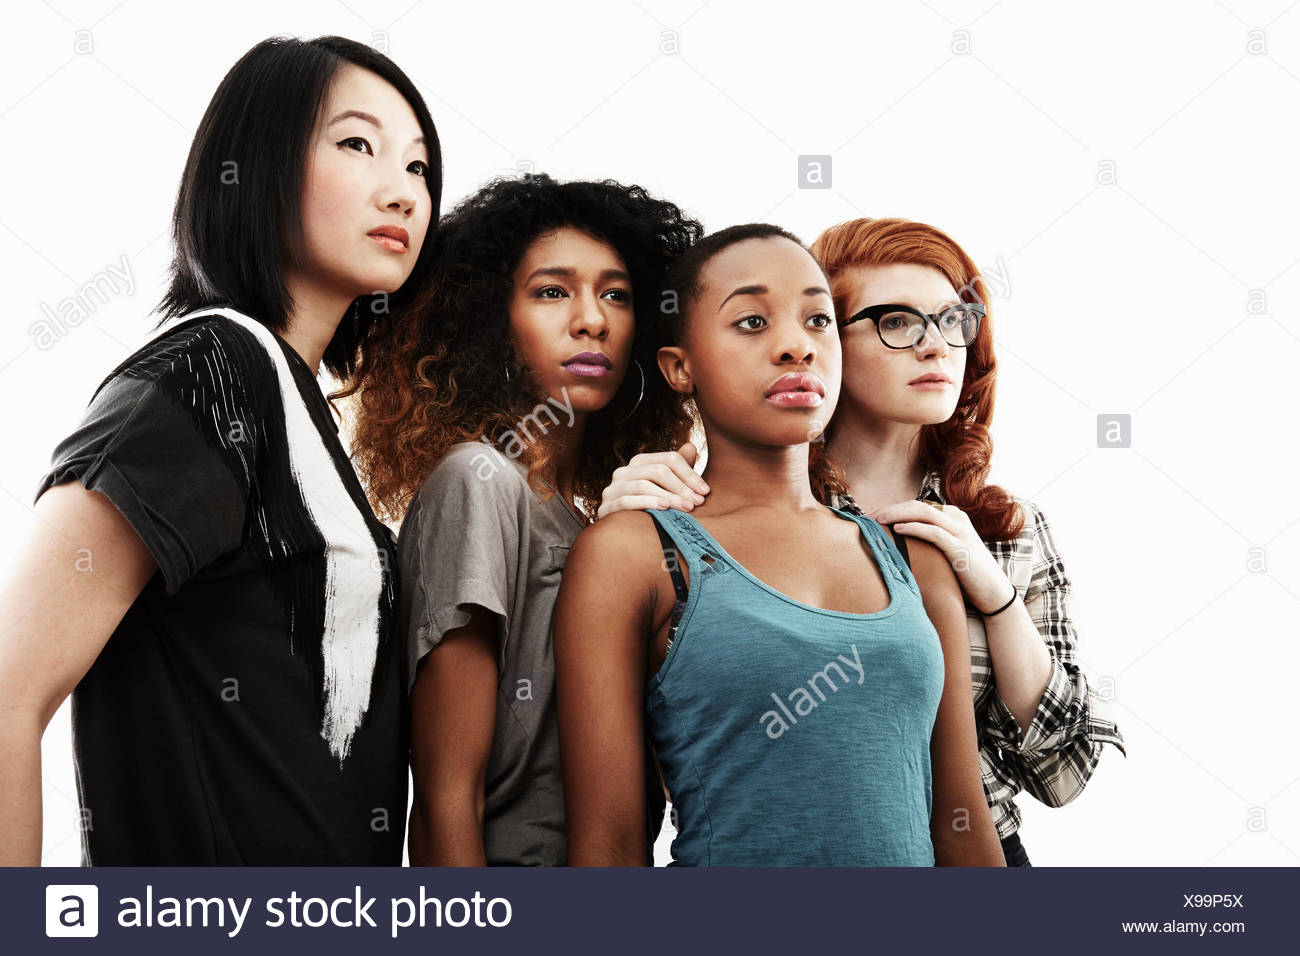 Studio portrait of four serious young women - Stock Image